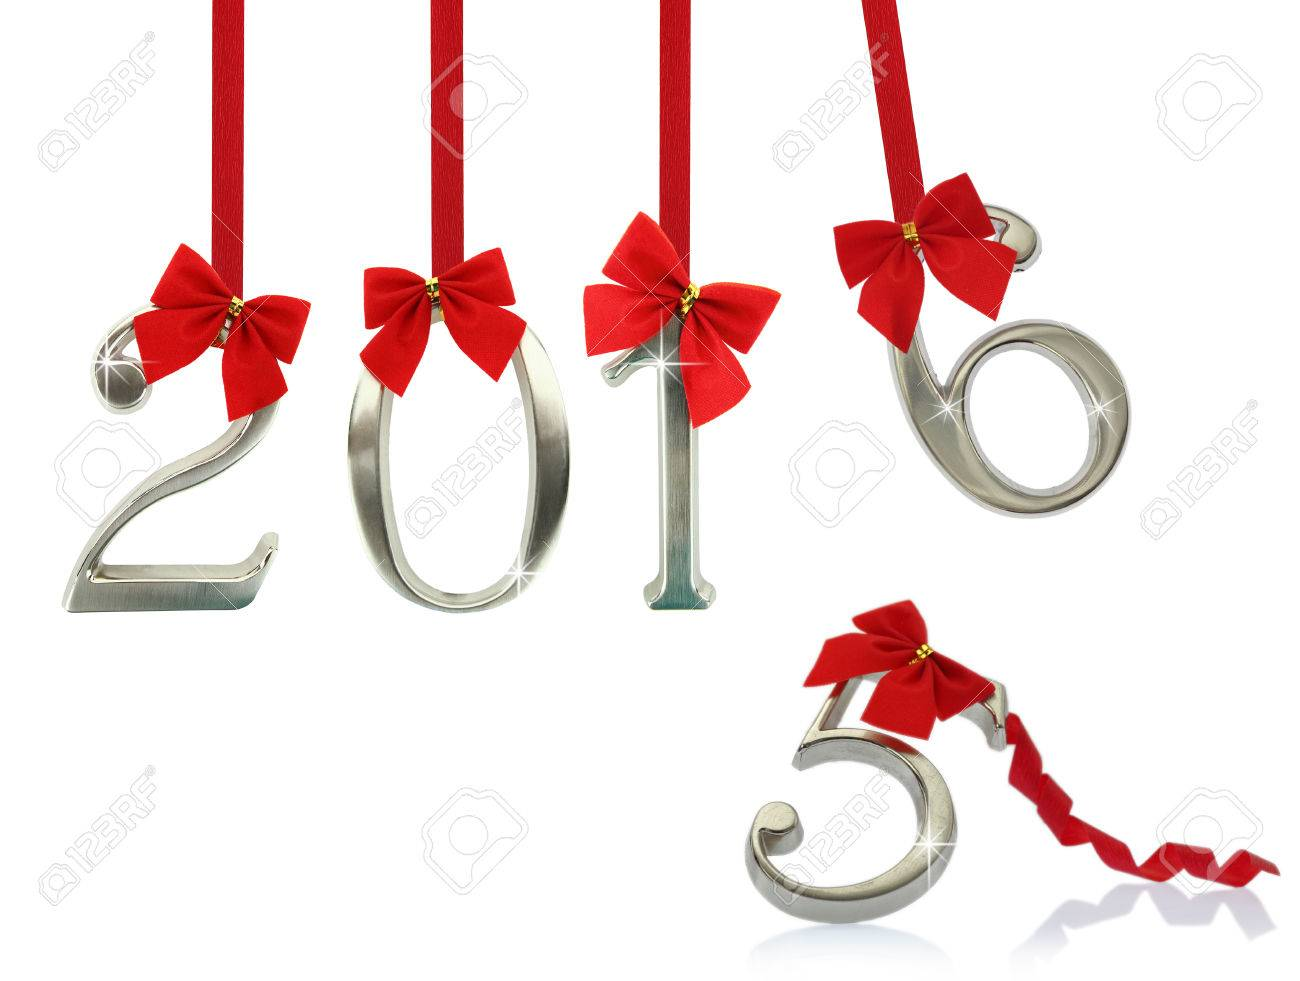 New year 2016 hanging on red ribbons Stock Photo - 38694535